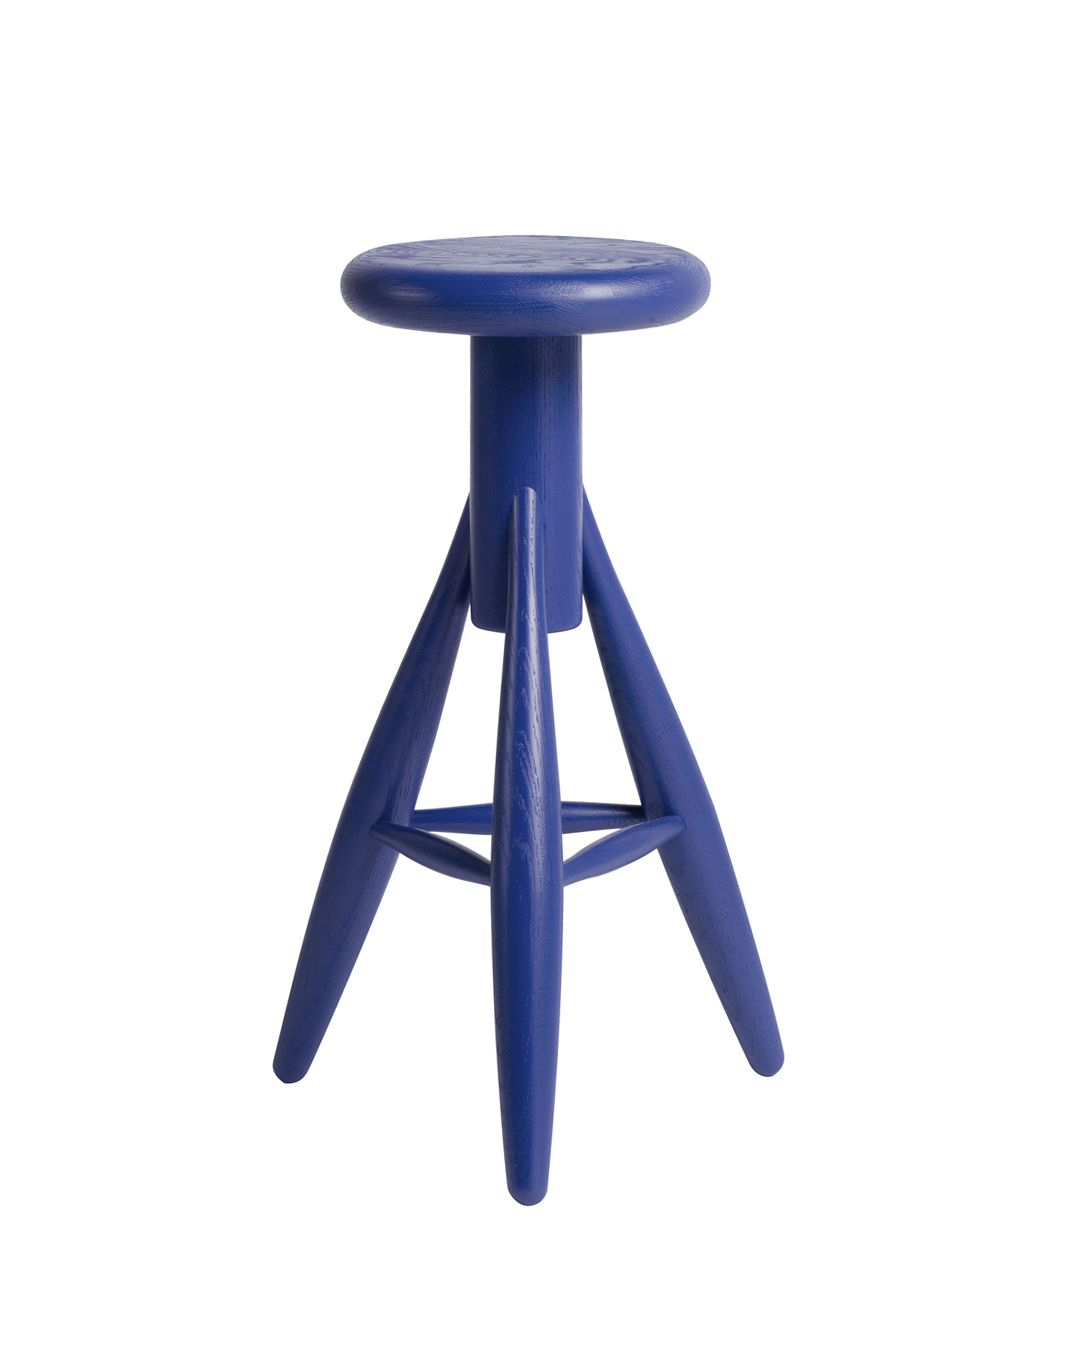 rocket stool  new colors  artek usa  c  pinterest  stools - rocket stool  new colors  artek usa